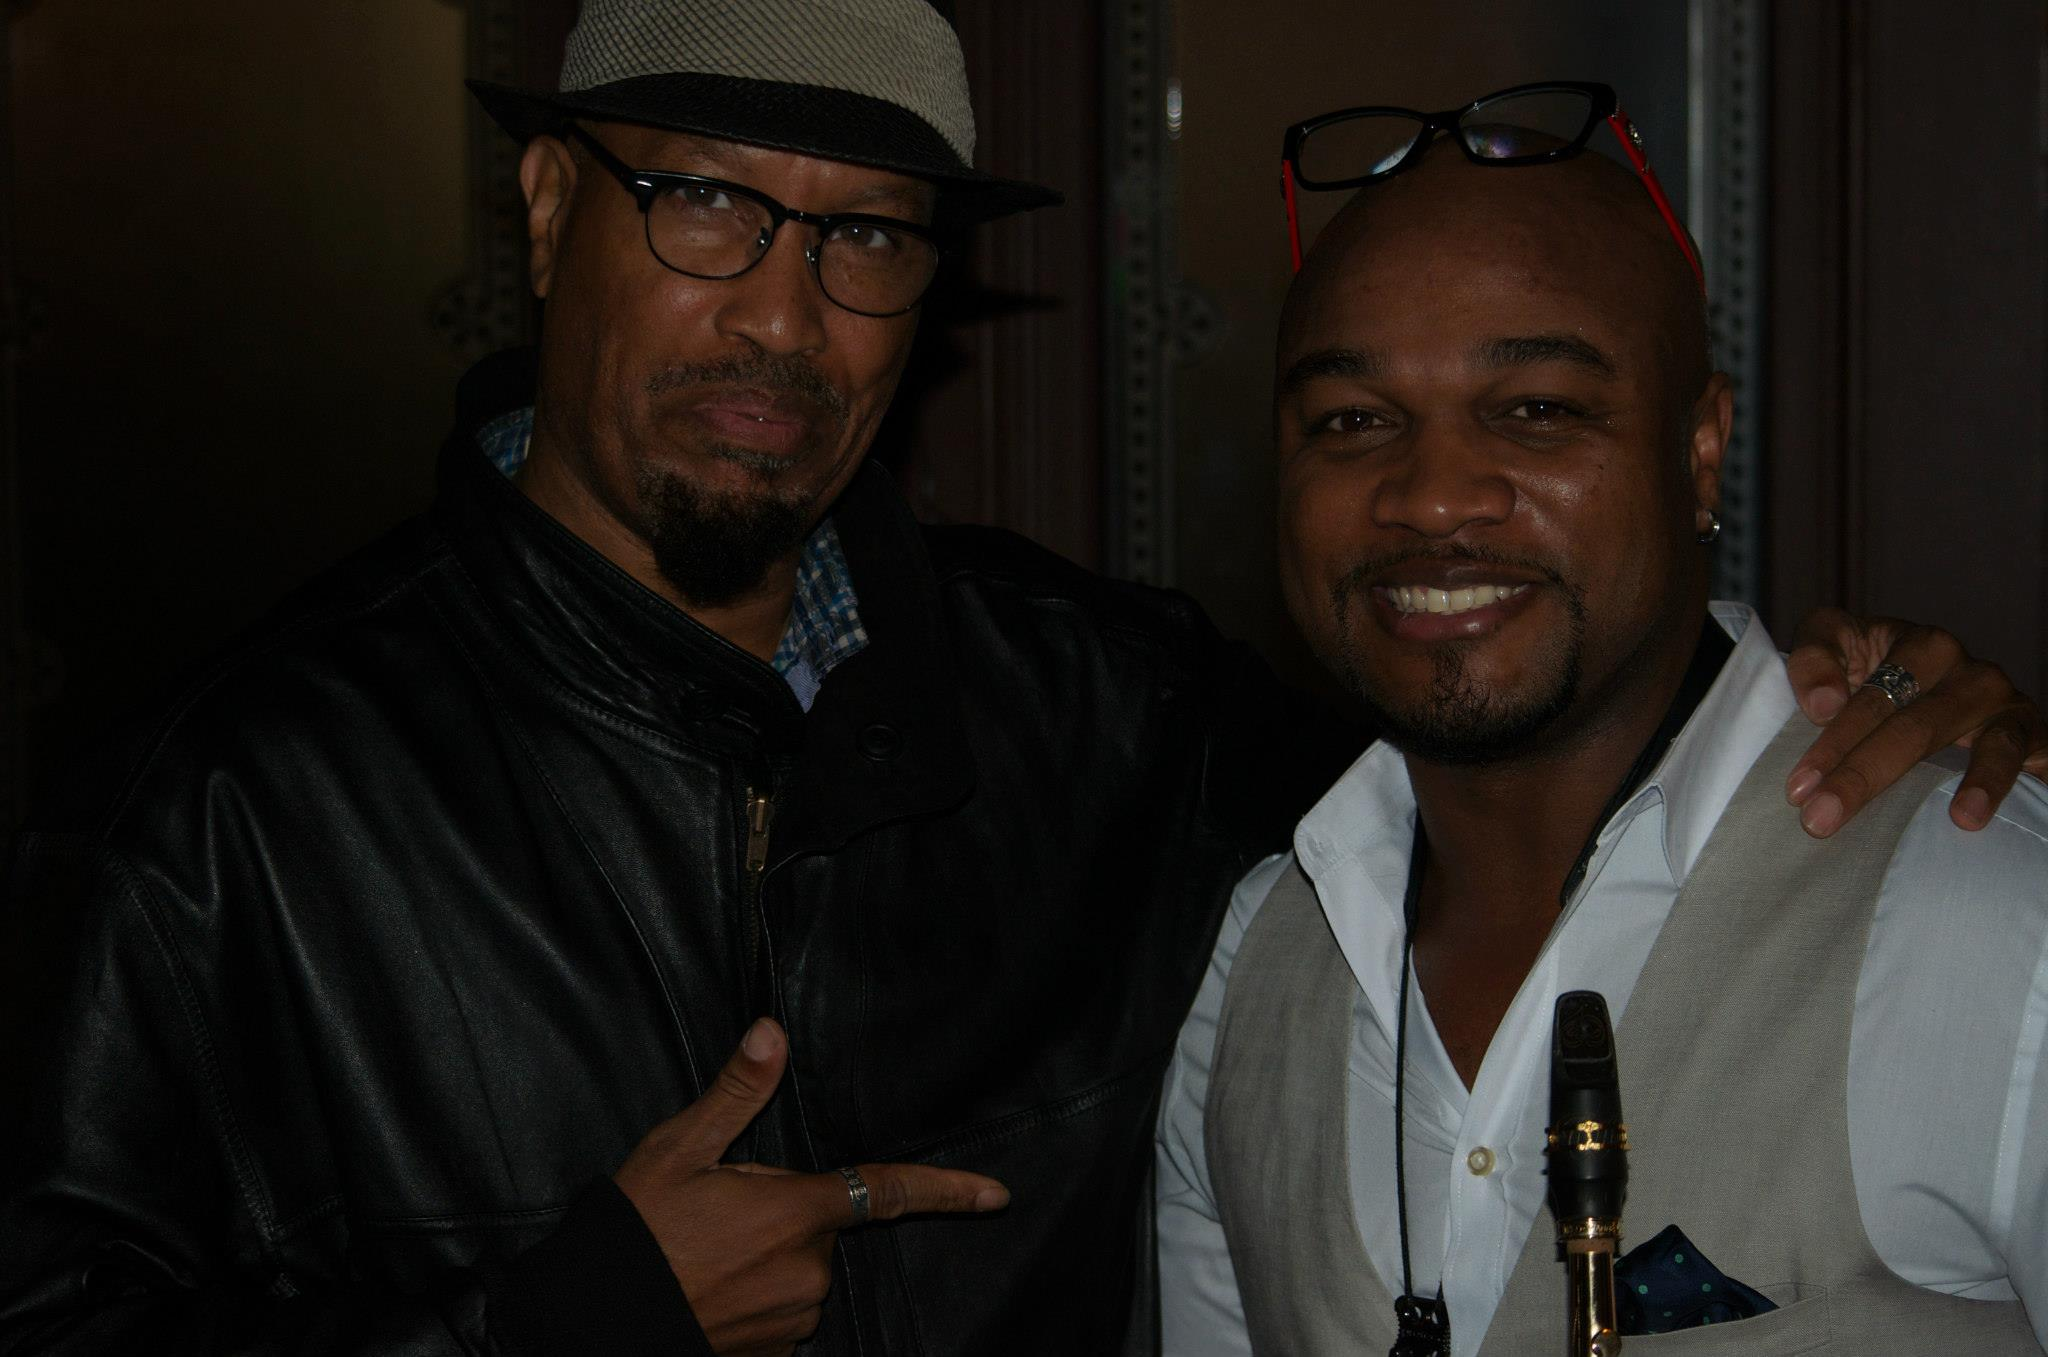 With Marcus Anderson in Germany